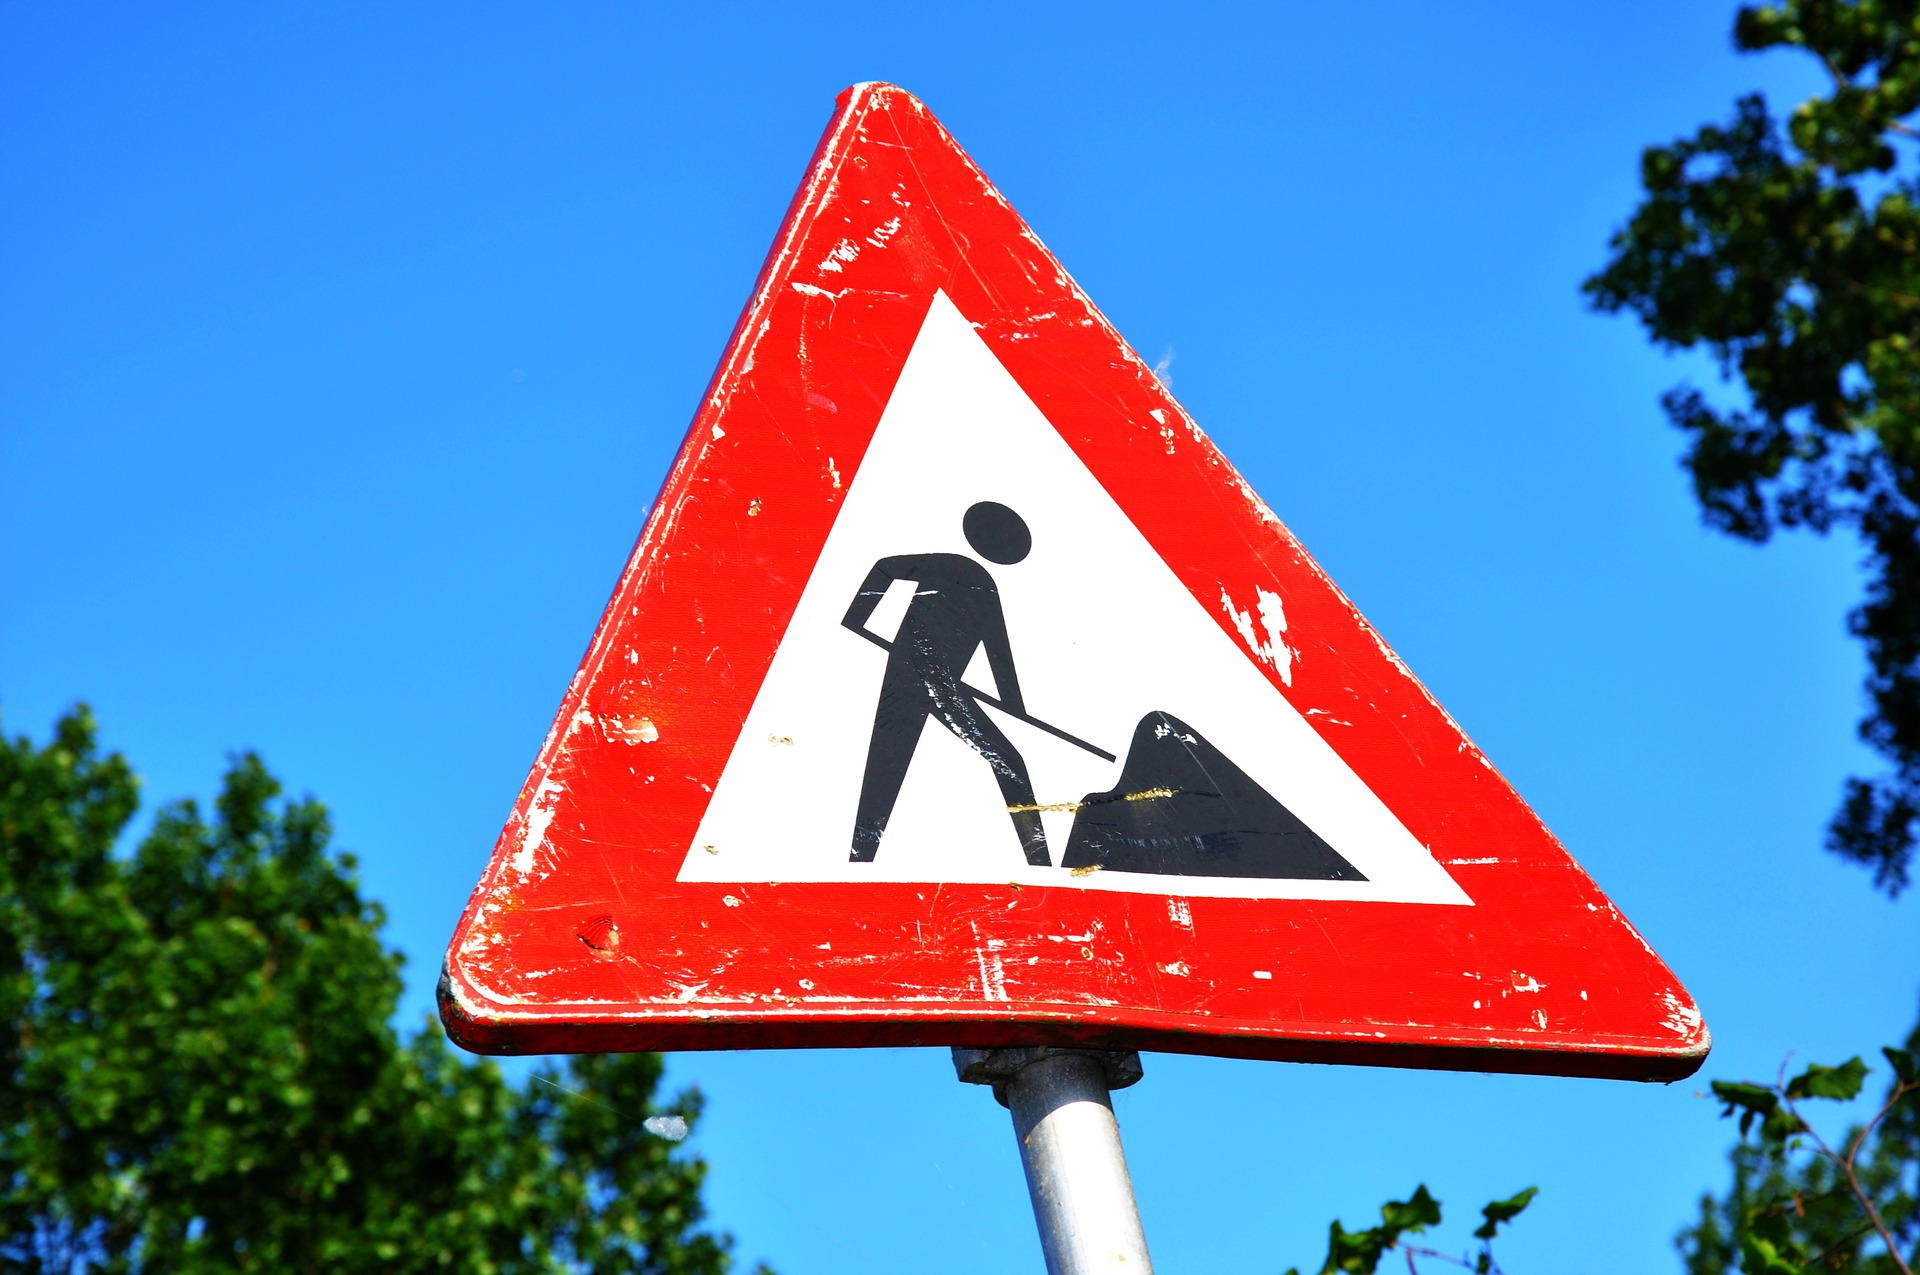 Highways England update: Planned roadworks in Kent and Sussex - weekly summary for Monday 22 July to Sunday 28 July